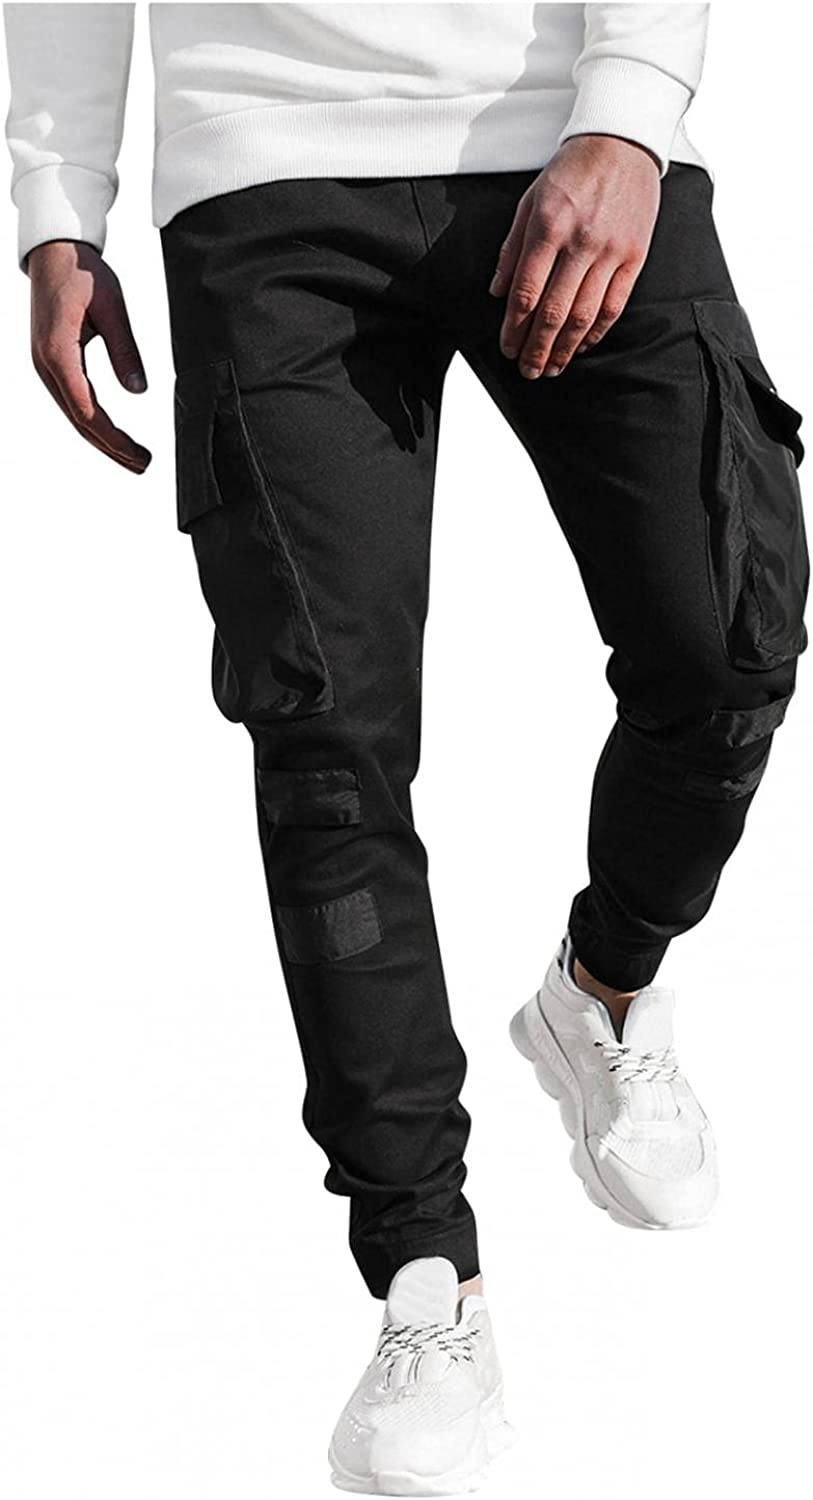 FUNEY Cargo Pants for Mens Fashion Joggers Sports Pants Regular Straight Stretch Tapered Sweatpants Trousers Pencil Pants